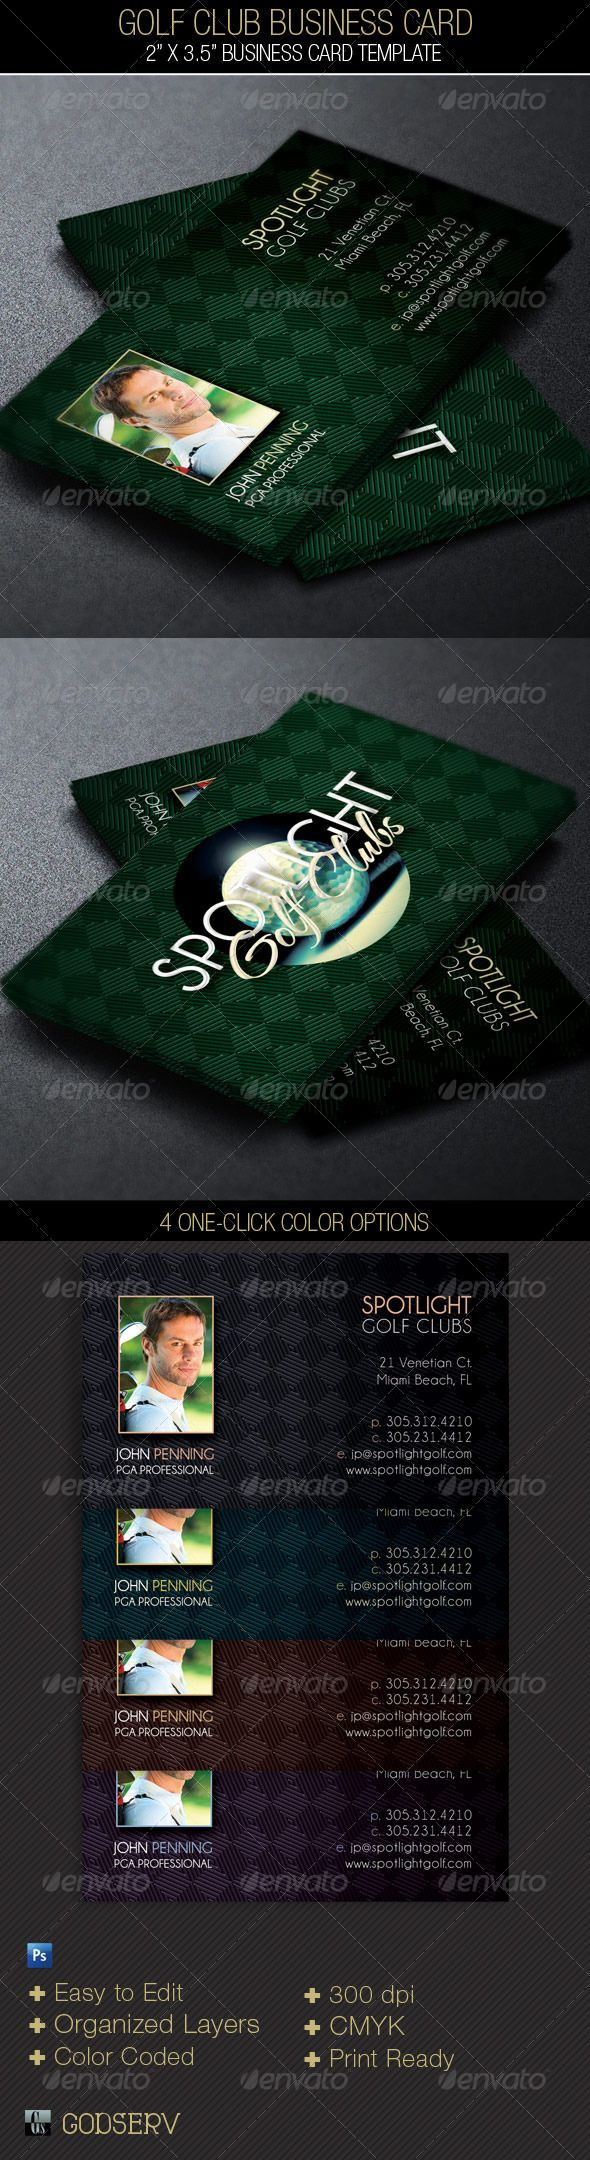 The Golf Club Business Card Template is for a modern Golf Club, Professional Golf Instructor, PGA Professional or Hobby Player. The template can also be used for other sports with simple edits. Make it part of your arsenal in your template database. Sold exclusively on graphicriver.net. $6.00